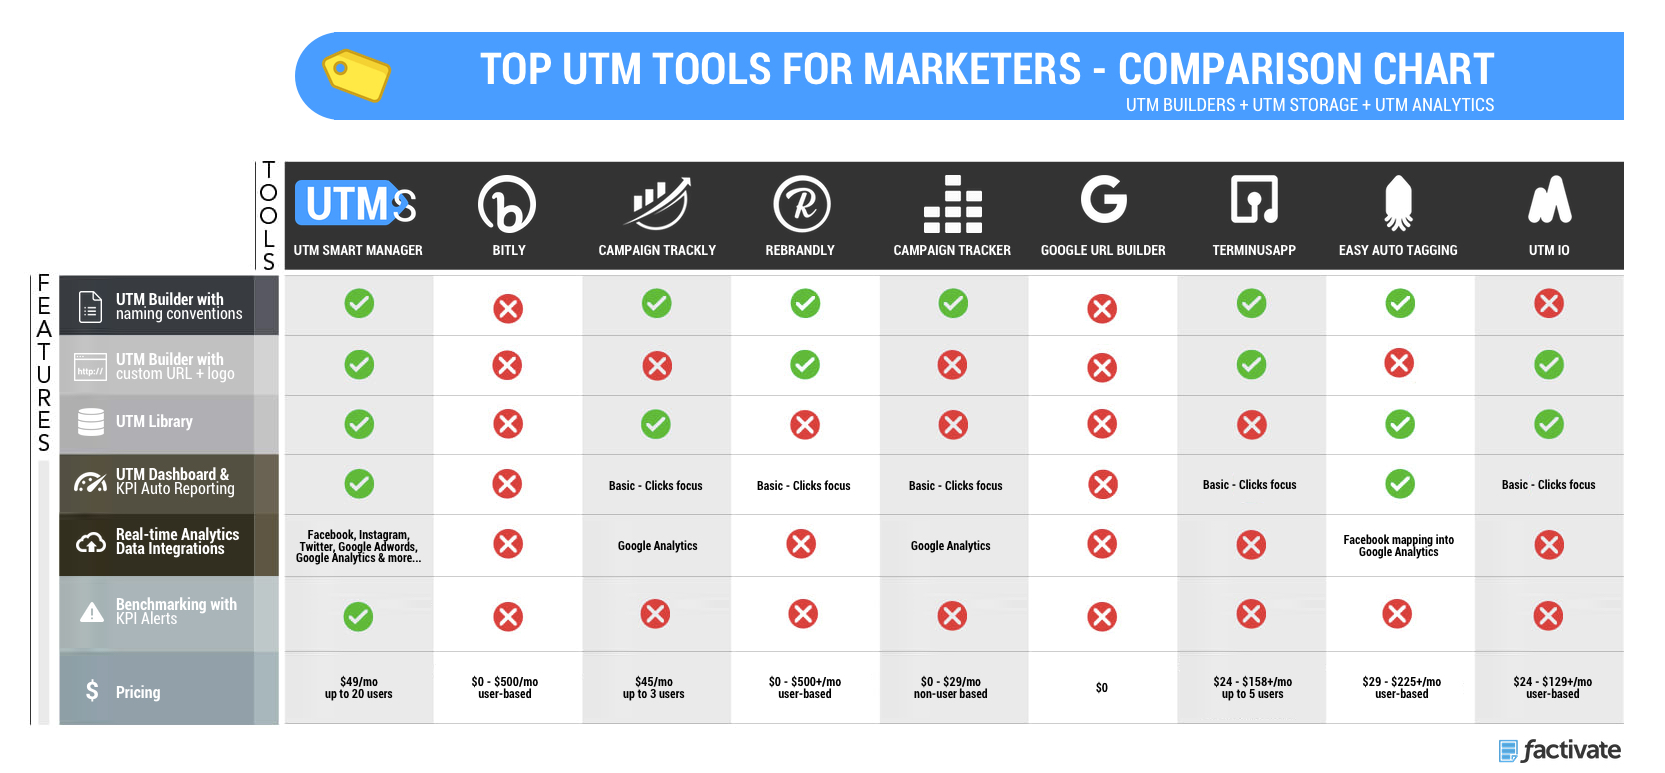 a comparison chart of the best utm builders and utm trackers for marketers